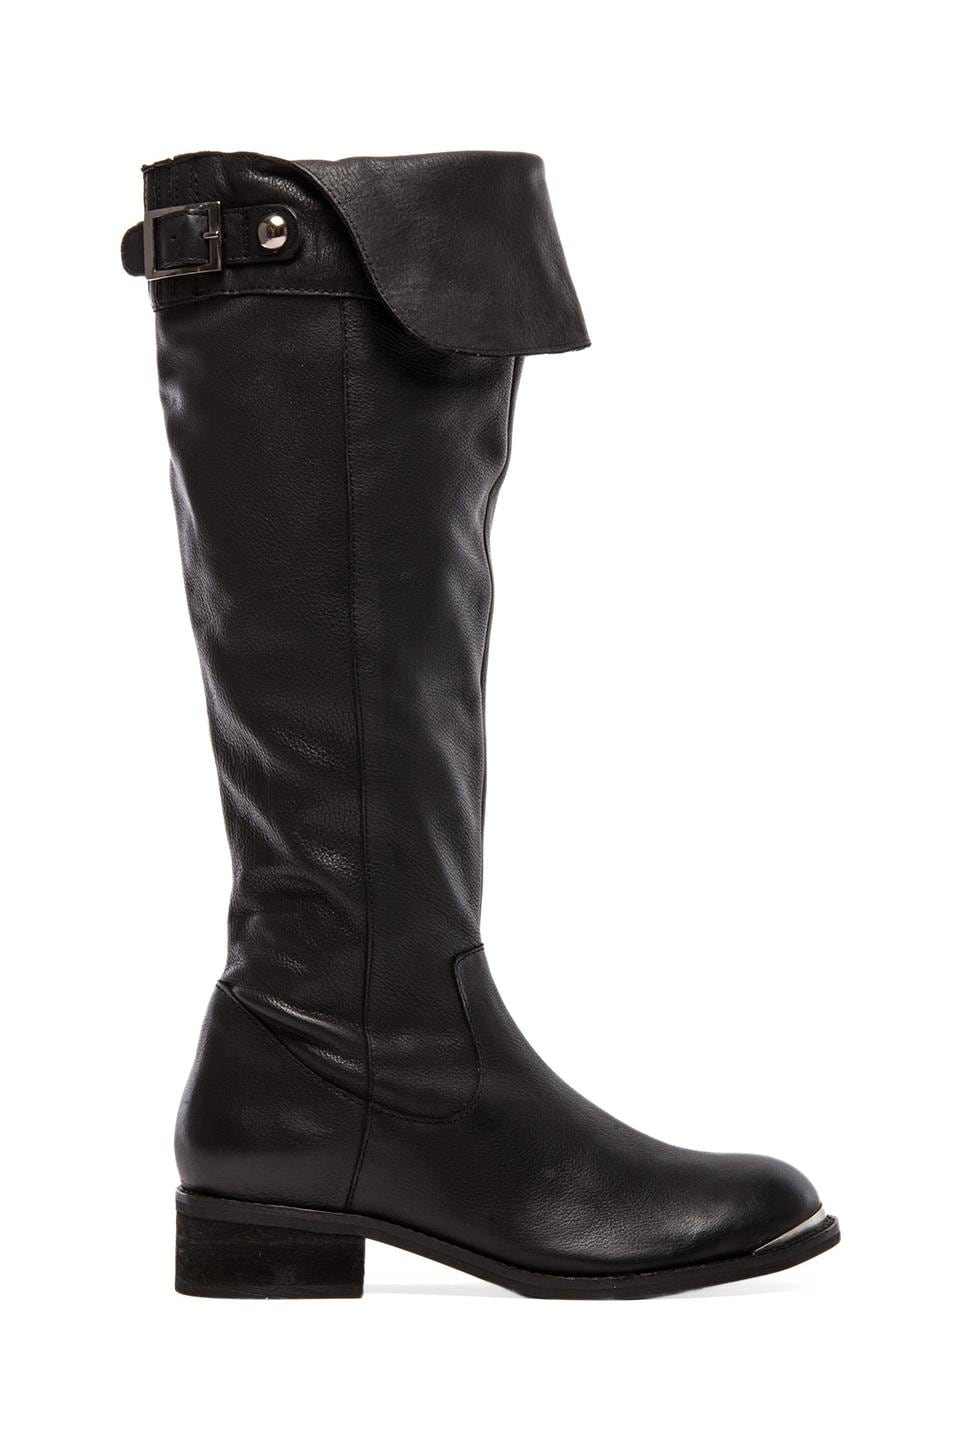 Seychelles All In Stride Over the Knee Boot in Black